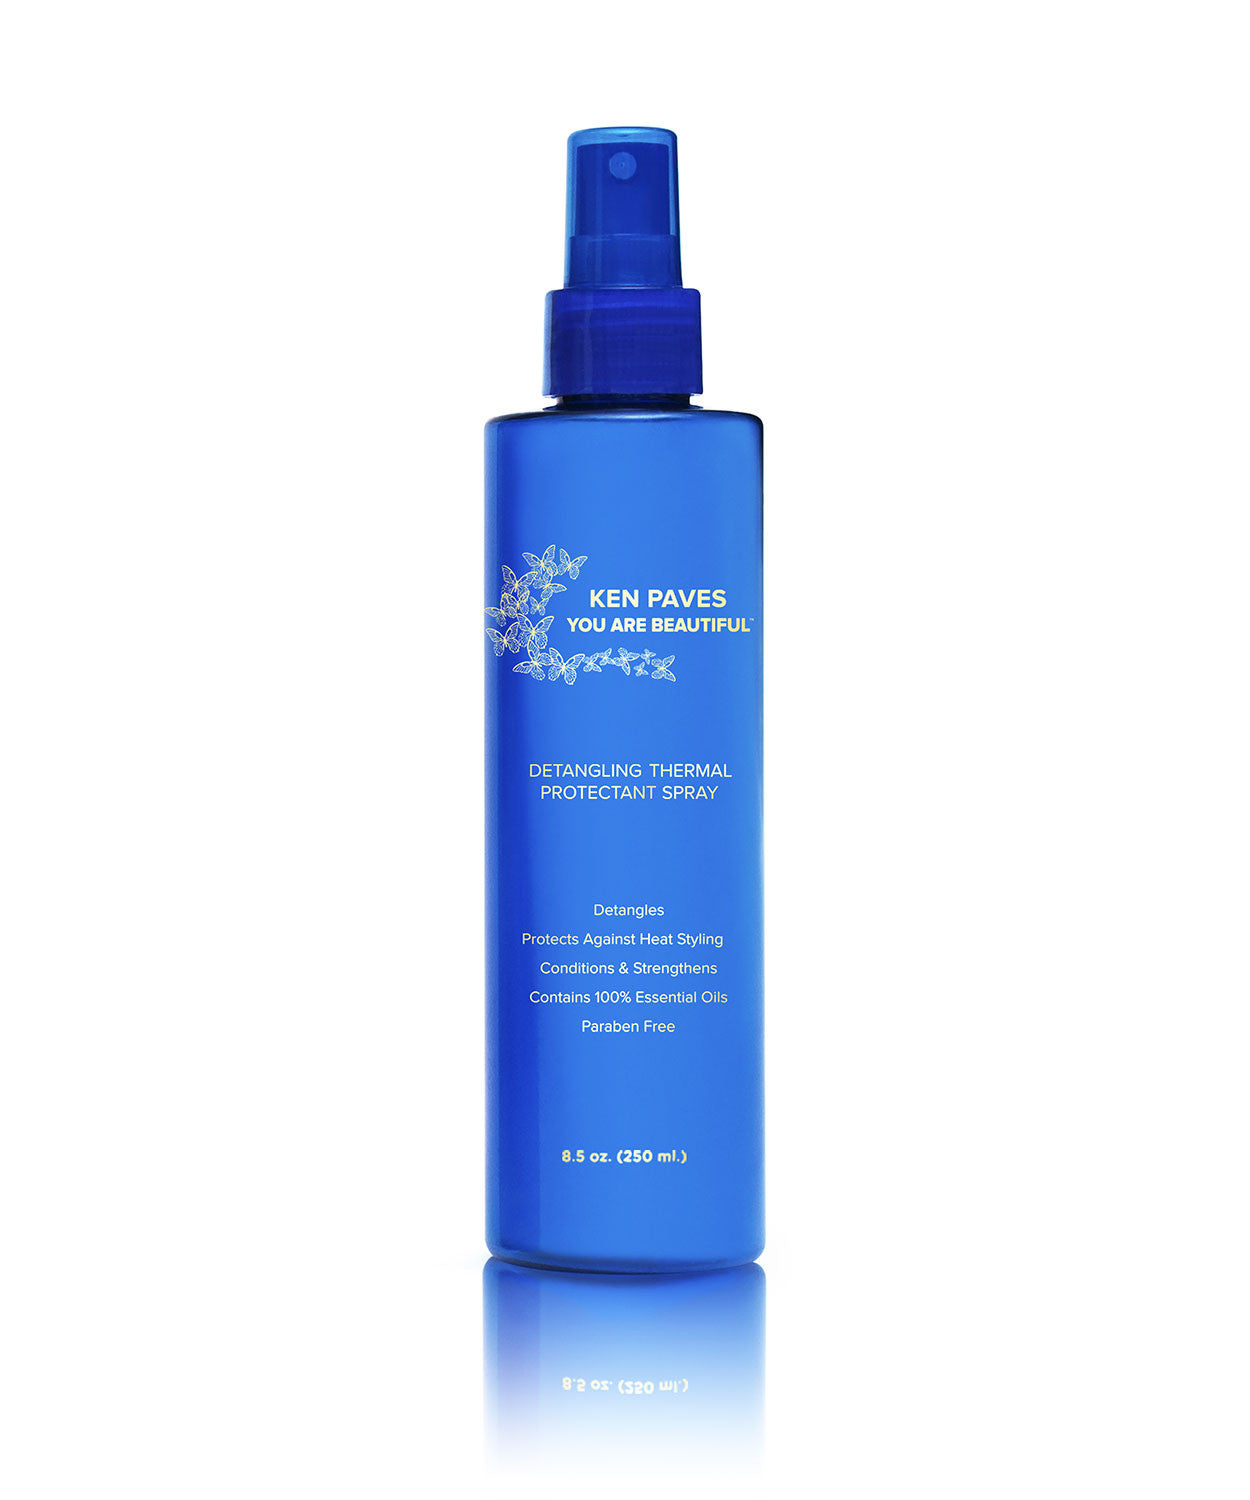 Detangling Thermal Protectant Spray